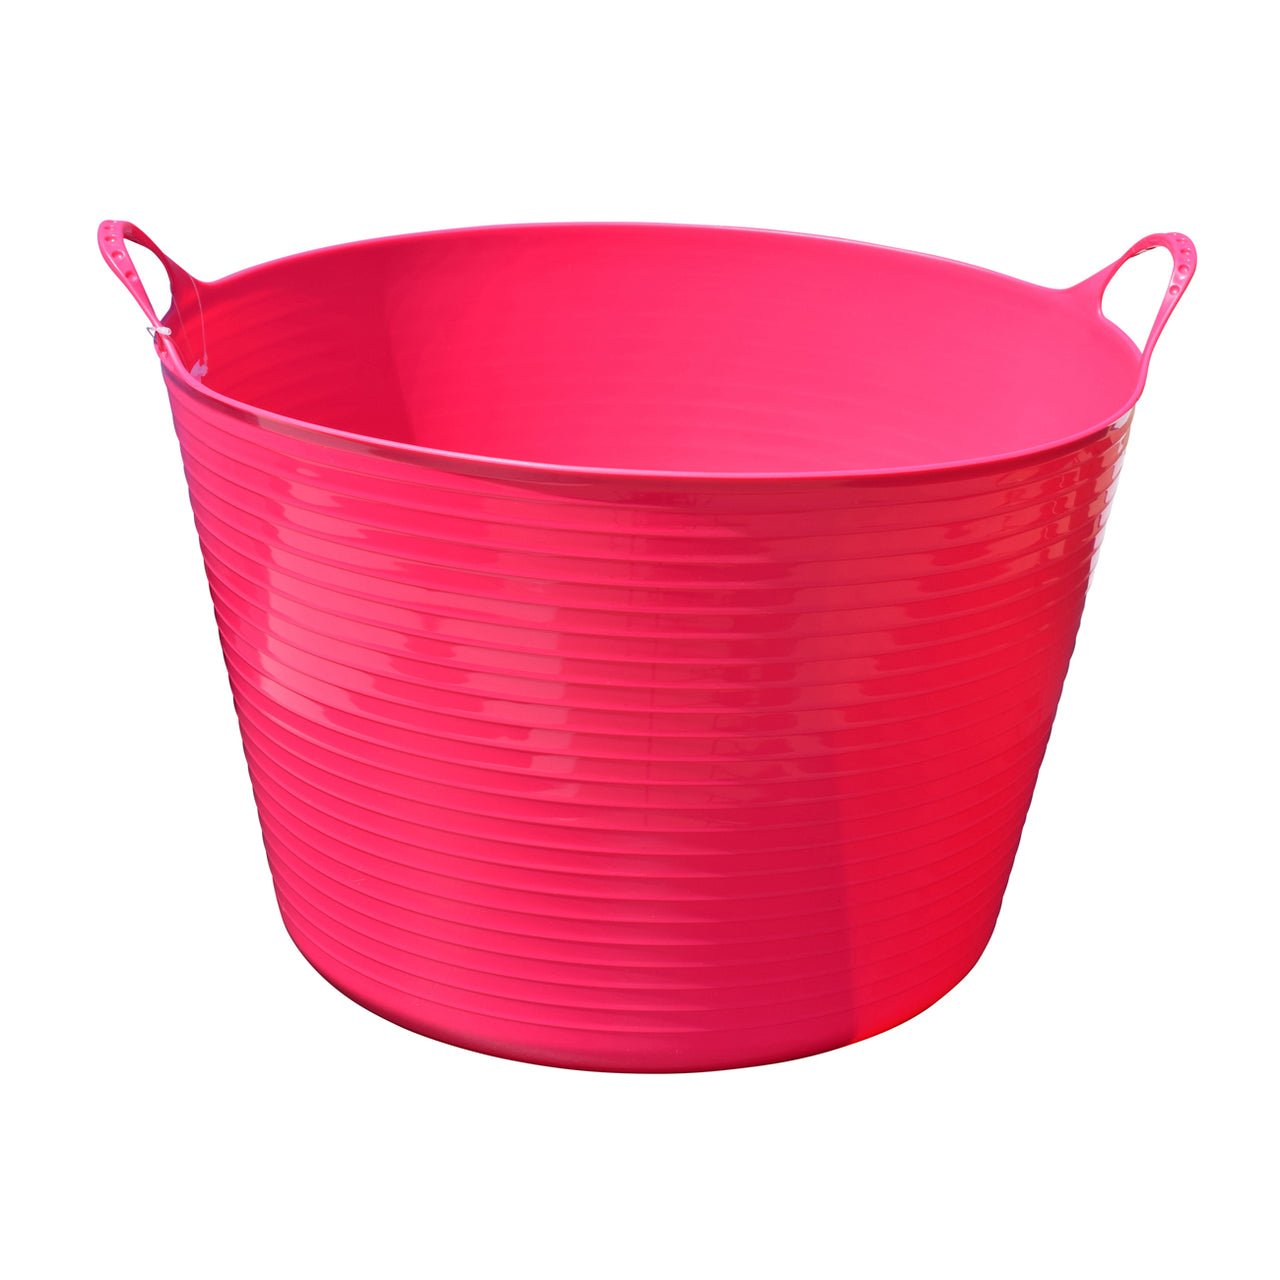 Tuff Stuff Flex Tub - Pink (4 Sizes) - Buckets Pails Feeders Scoops Tubs Bottles Tuff Stuff - Canada